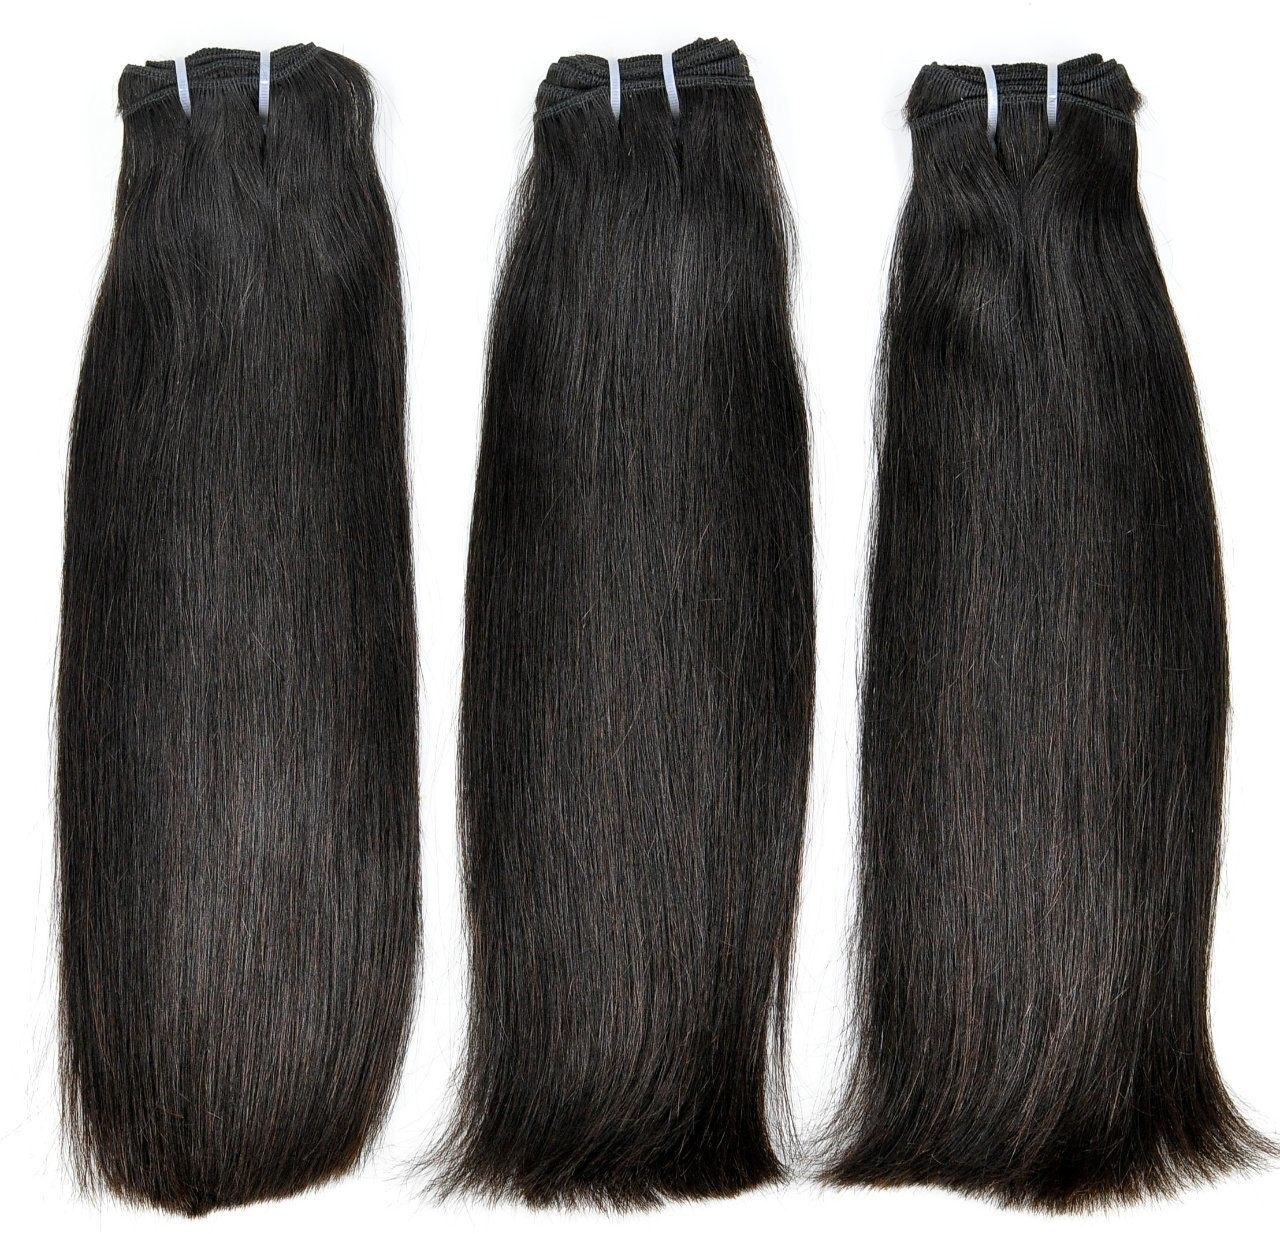 Hair Standard Of 32 Inches Straight Hair Extensions